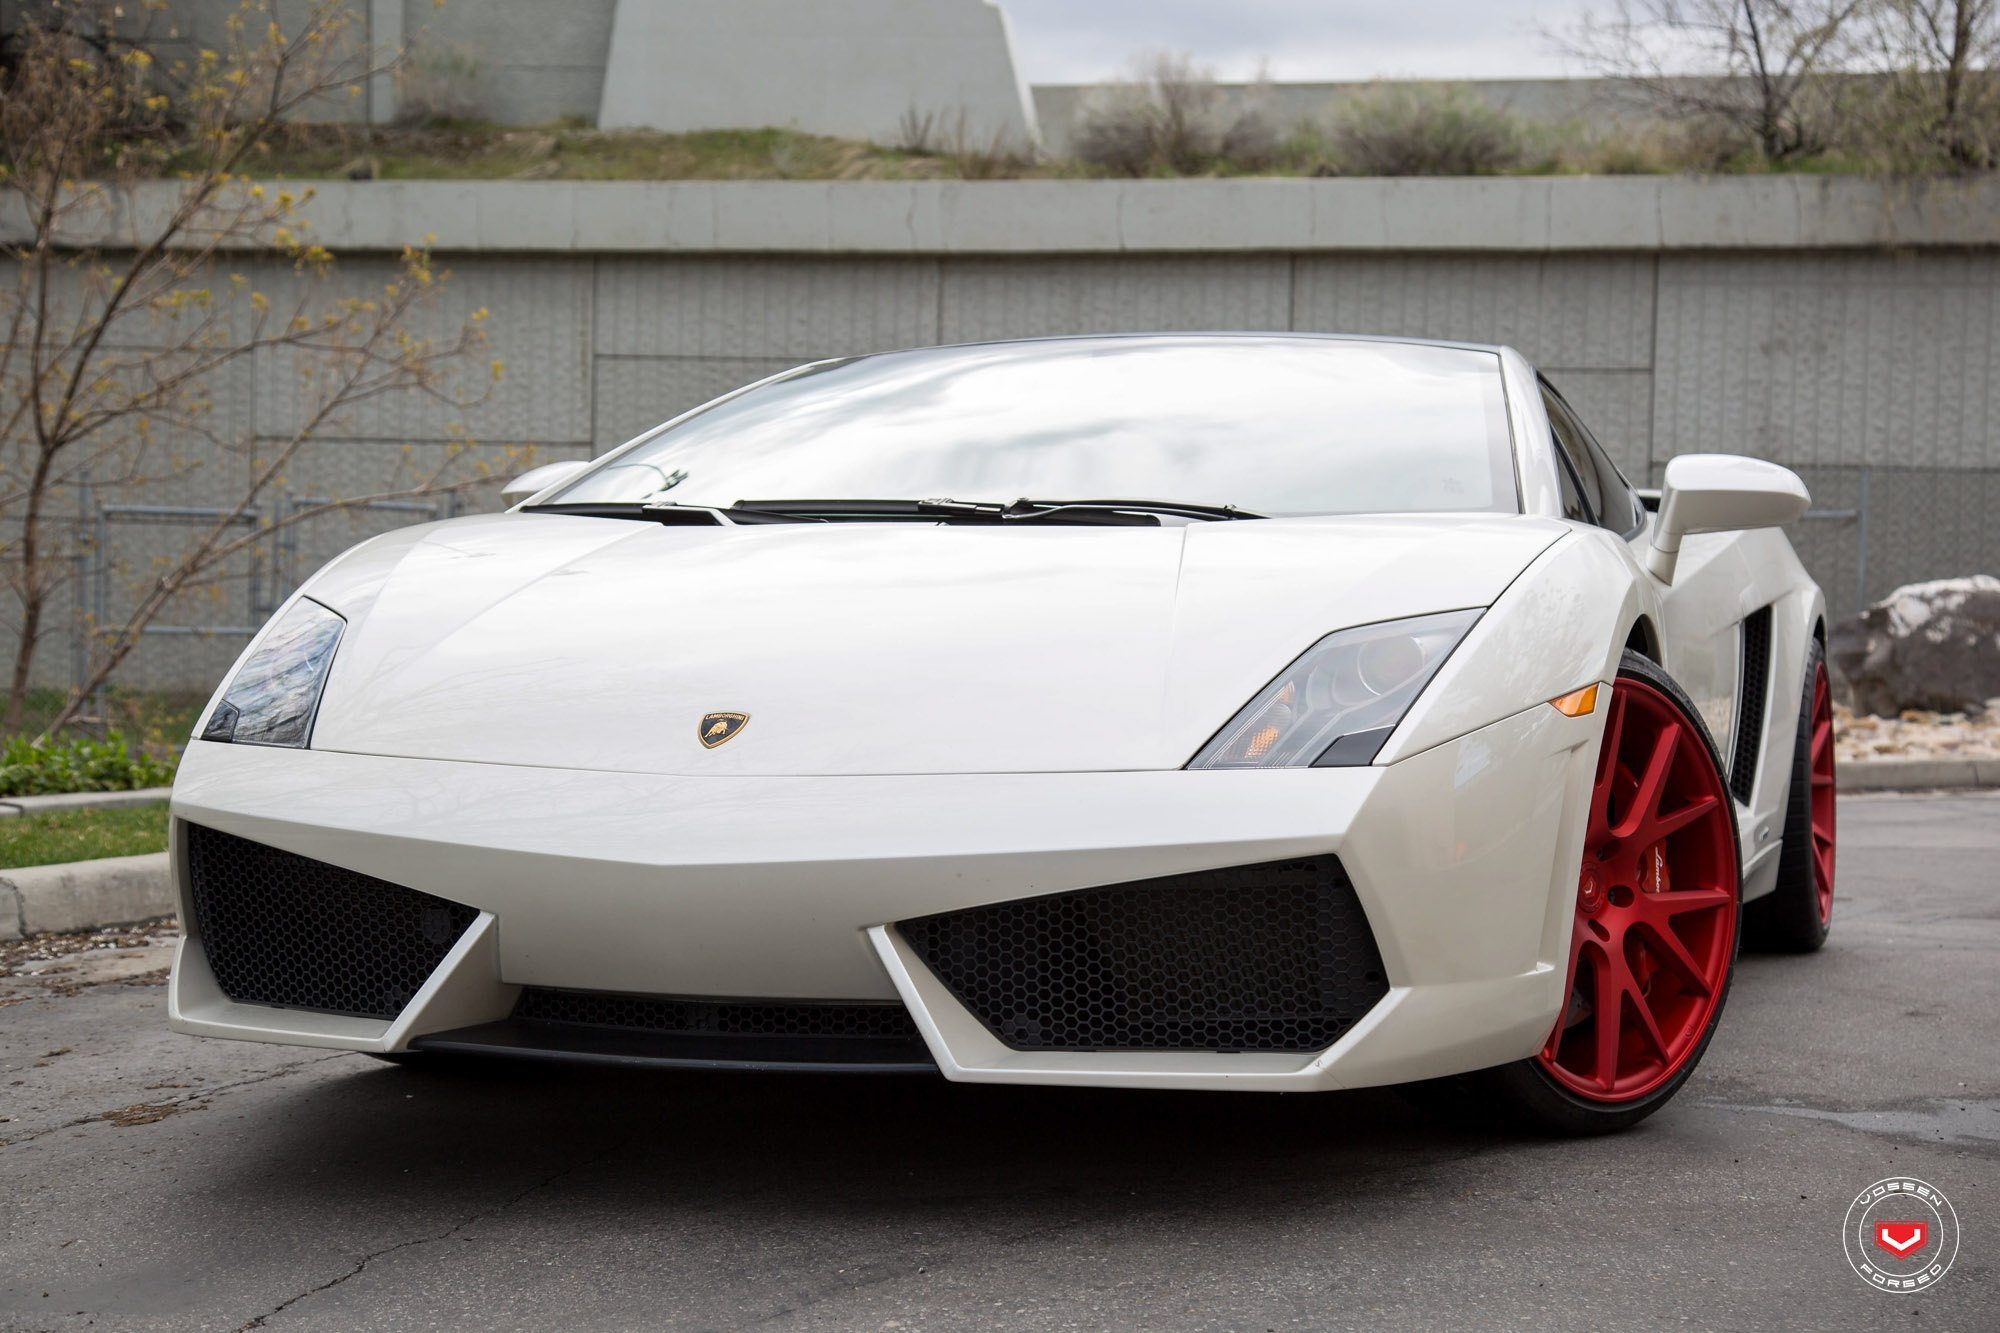 Flair Detected On Tuned White Lamborghini Gallardo Carid Com Gallery